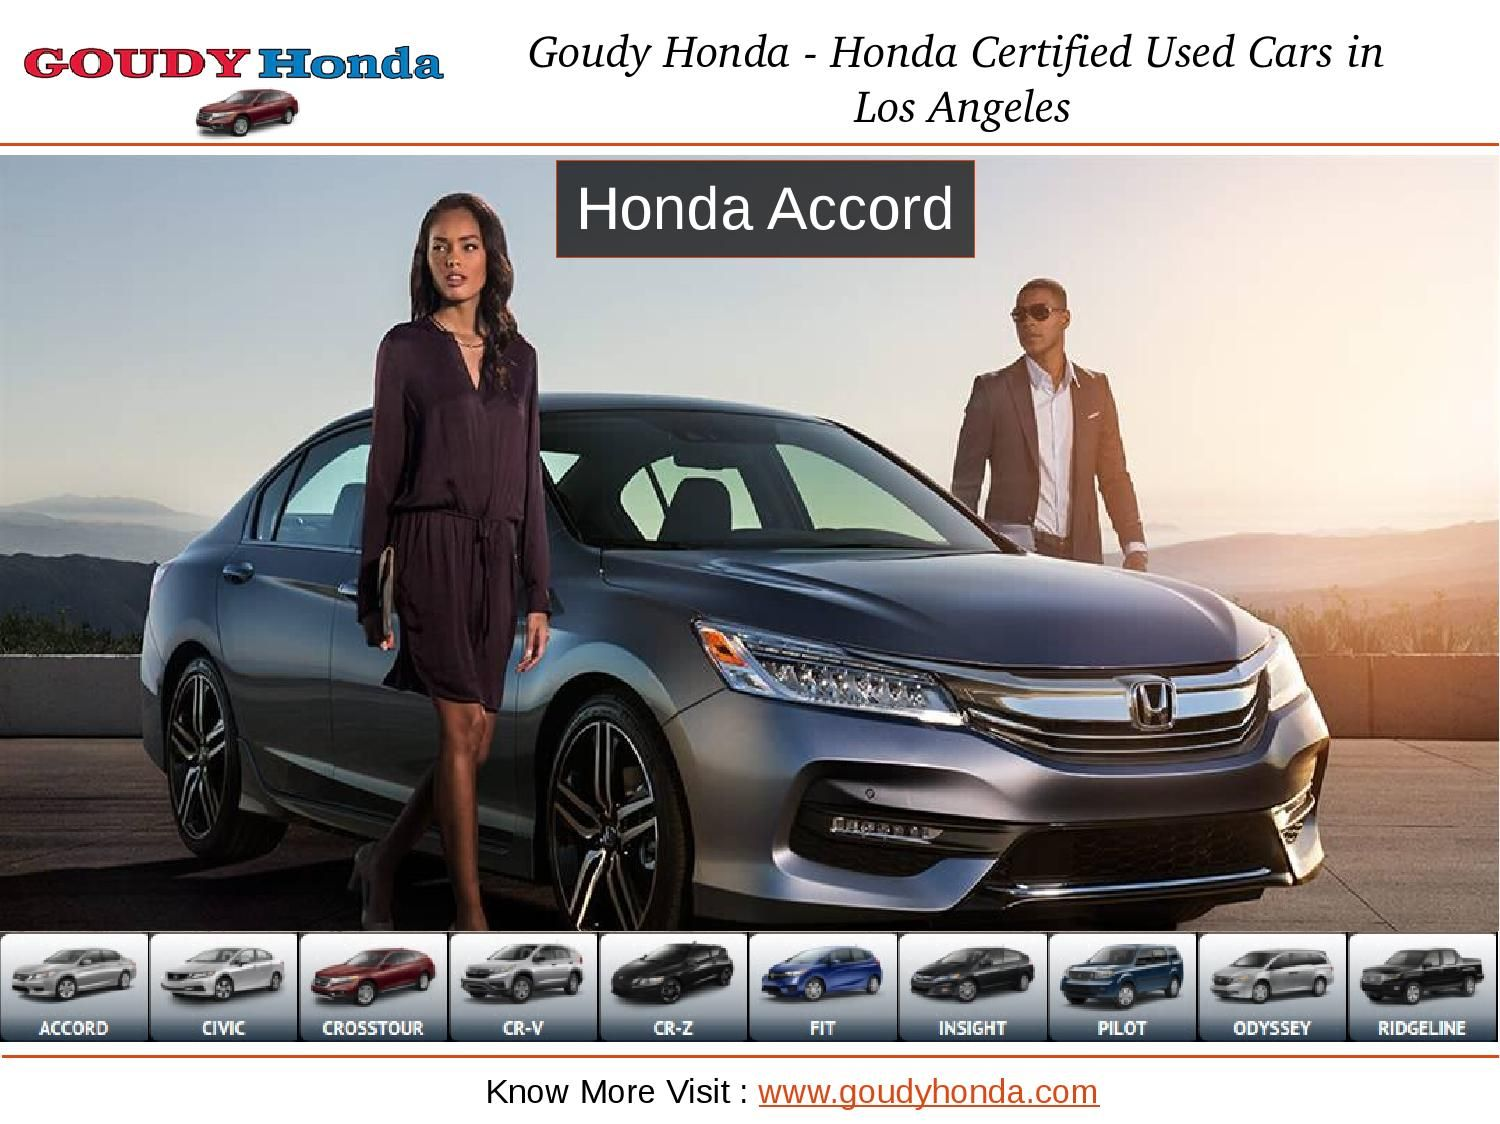 Goudy honda best honda dealer in los angeles Honda